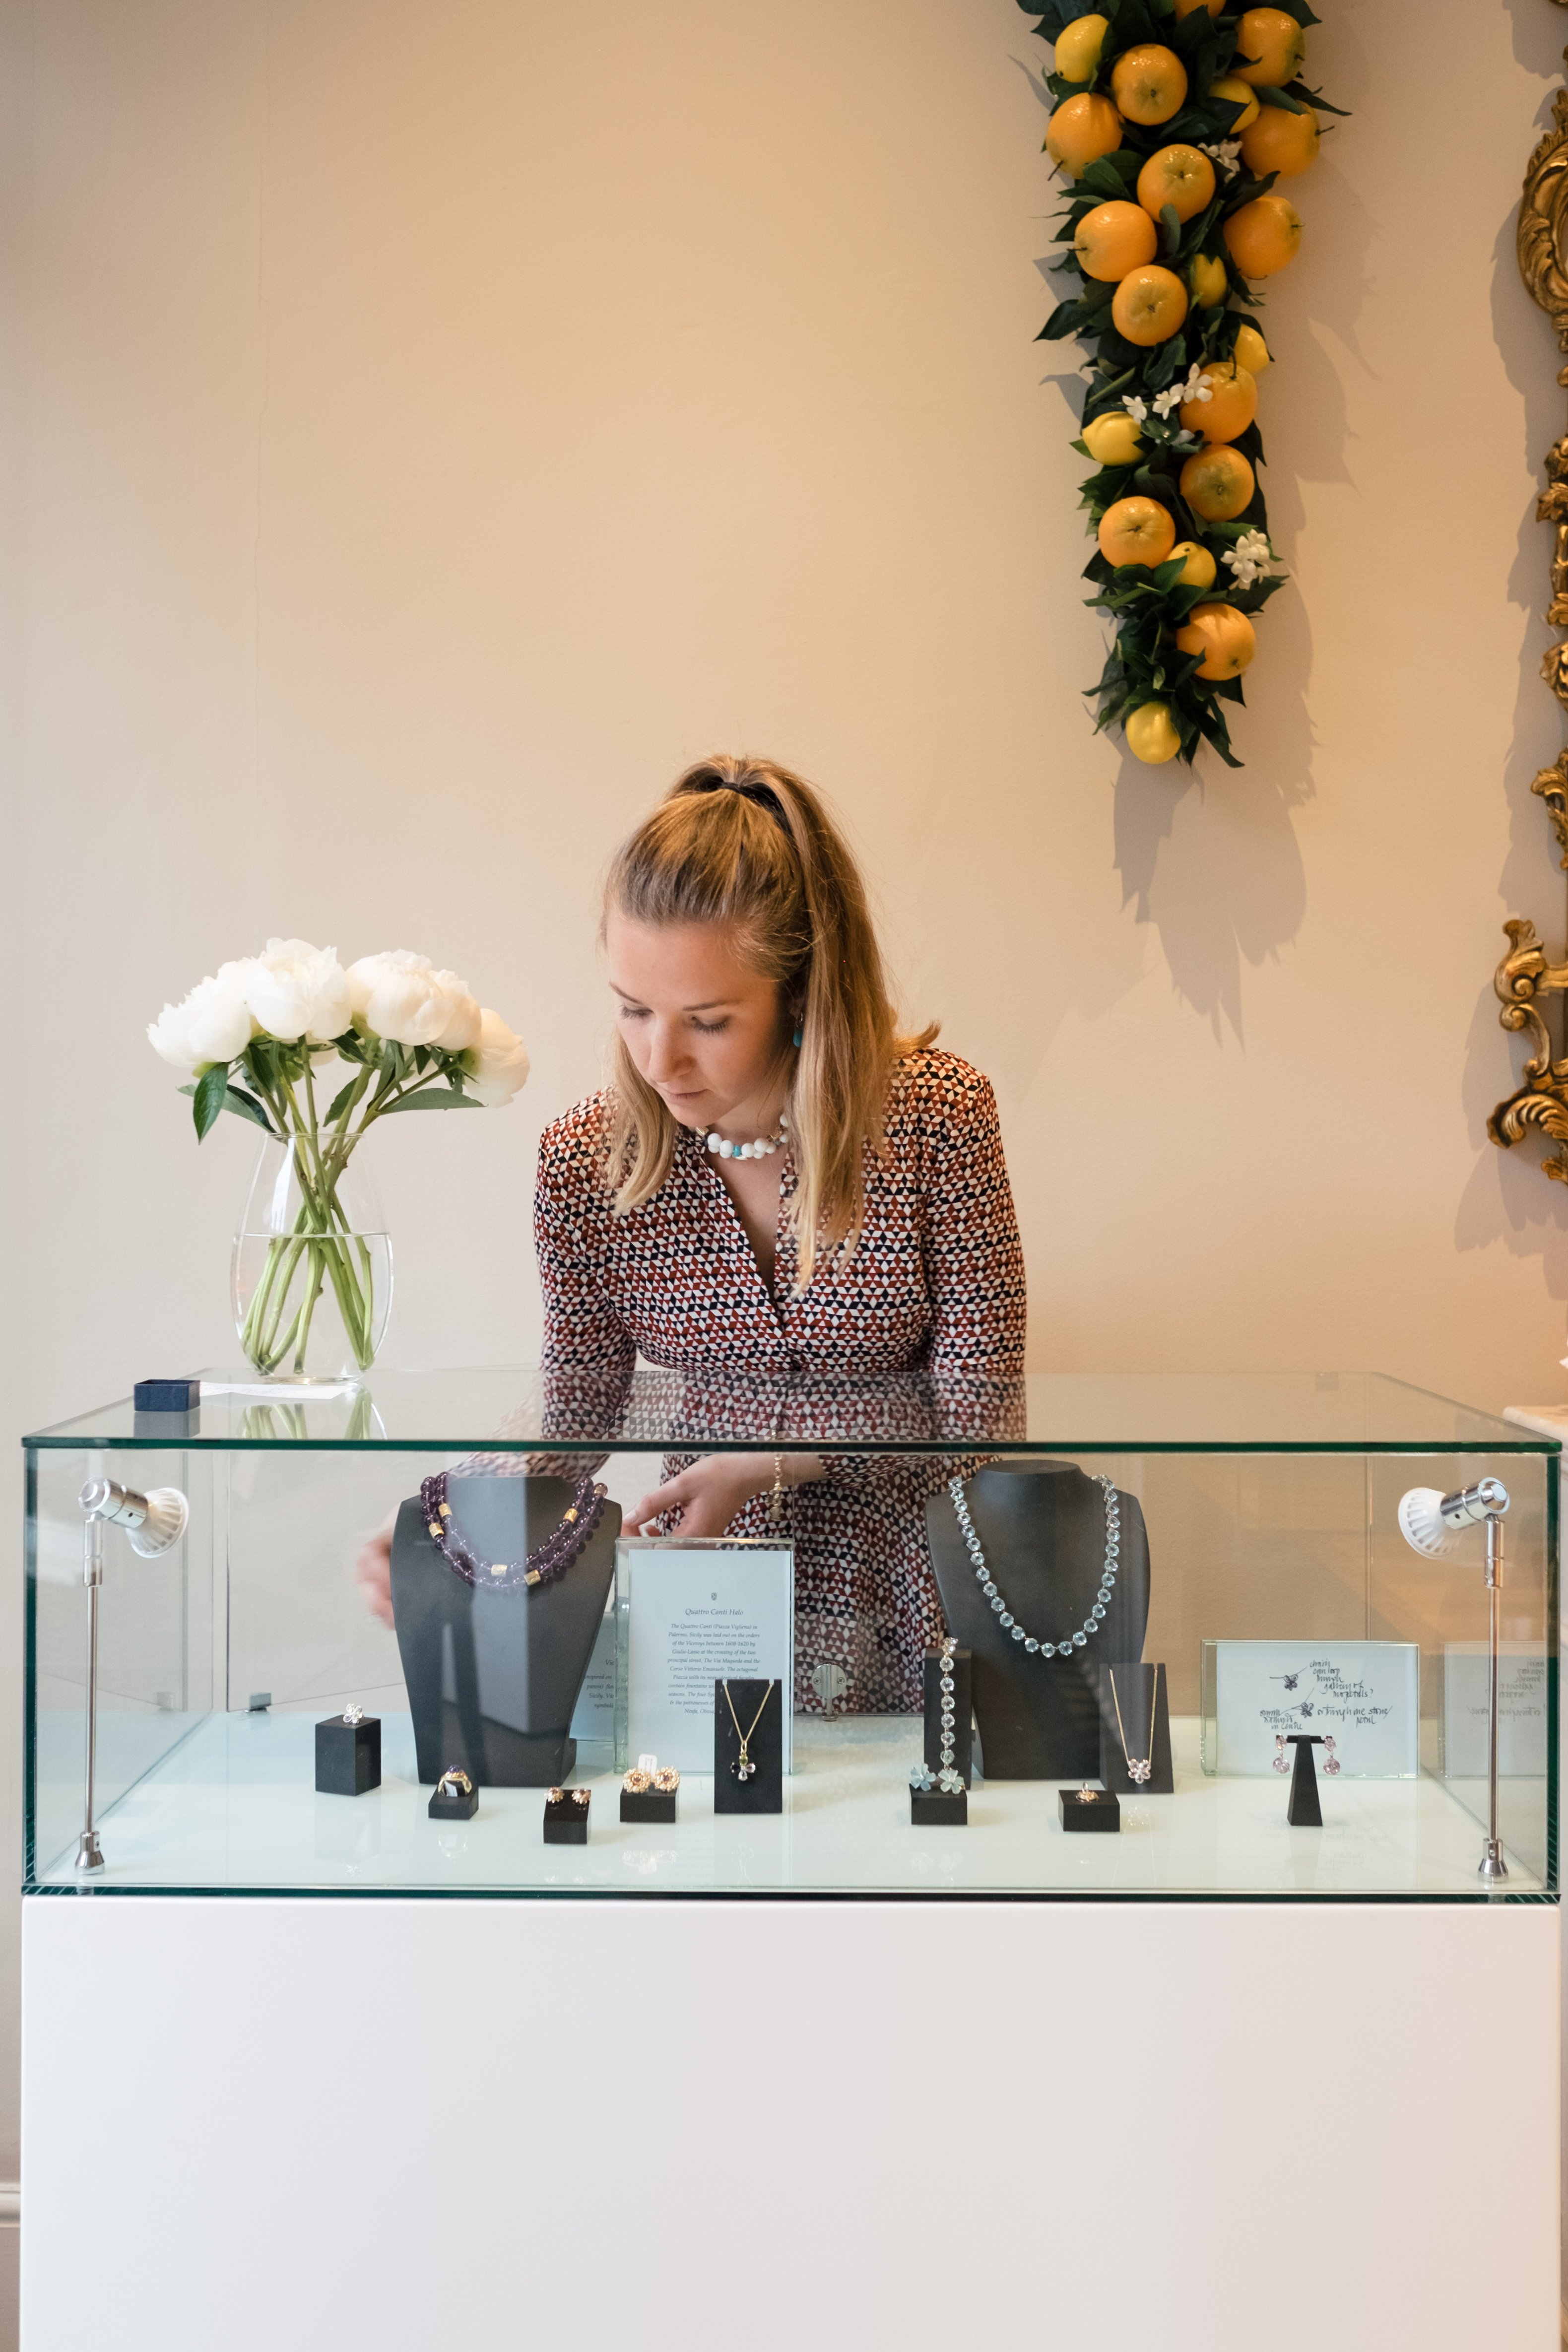 #AA6B21 Glass Display Cabinet Hire Exhibition Plinths with 3160x4740 px of Highly Rated Glass Display Cabinets To Hire 47403160 picture/photo @ avoidforclosure.info